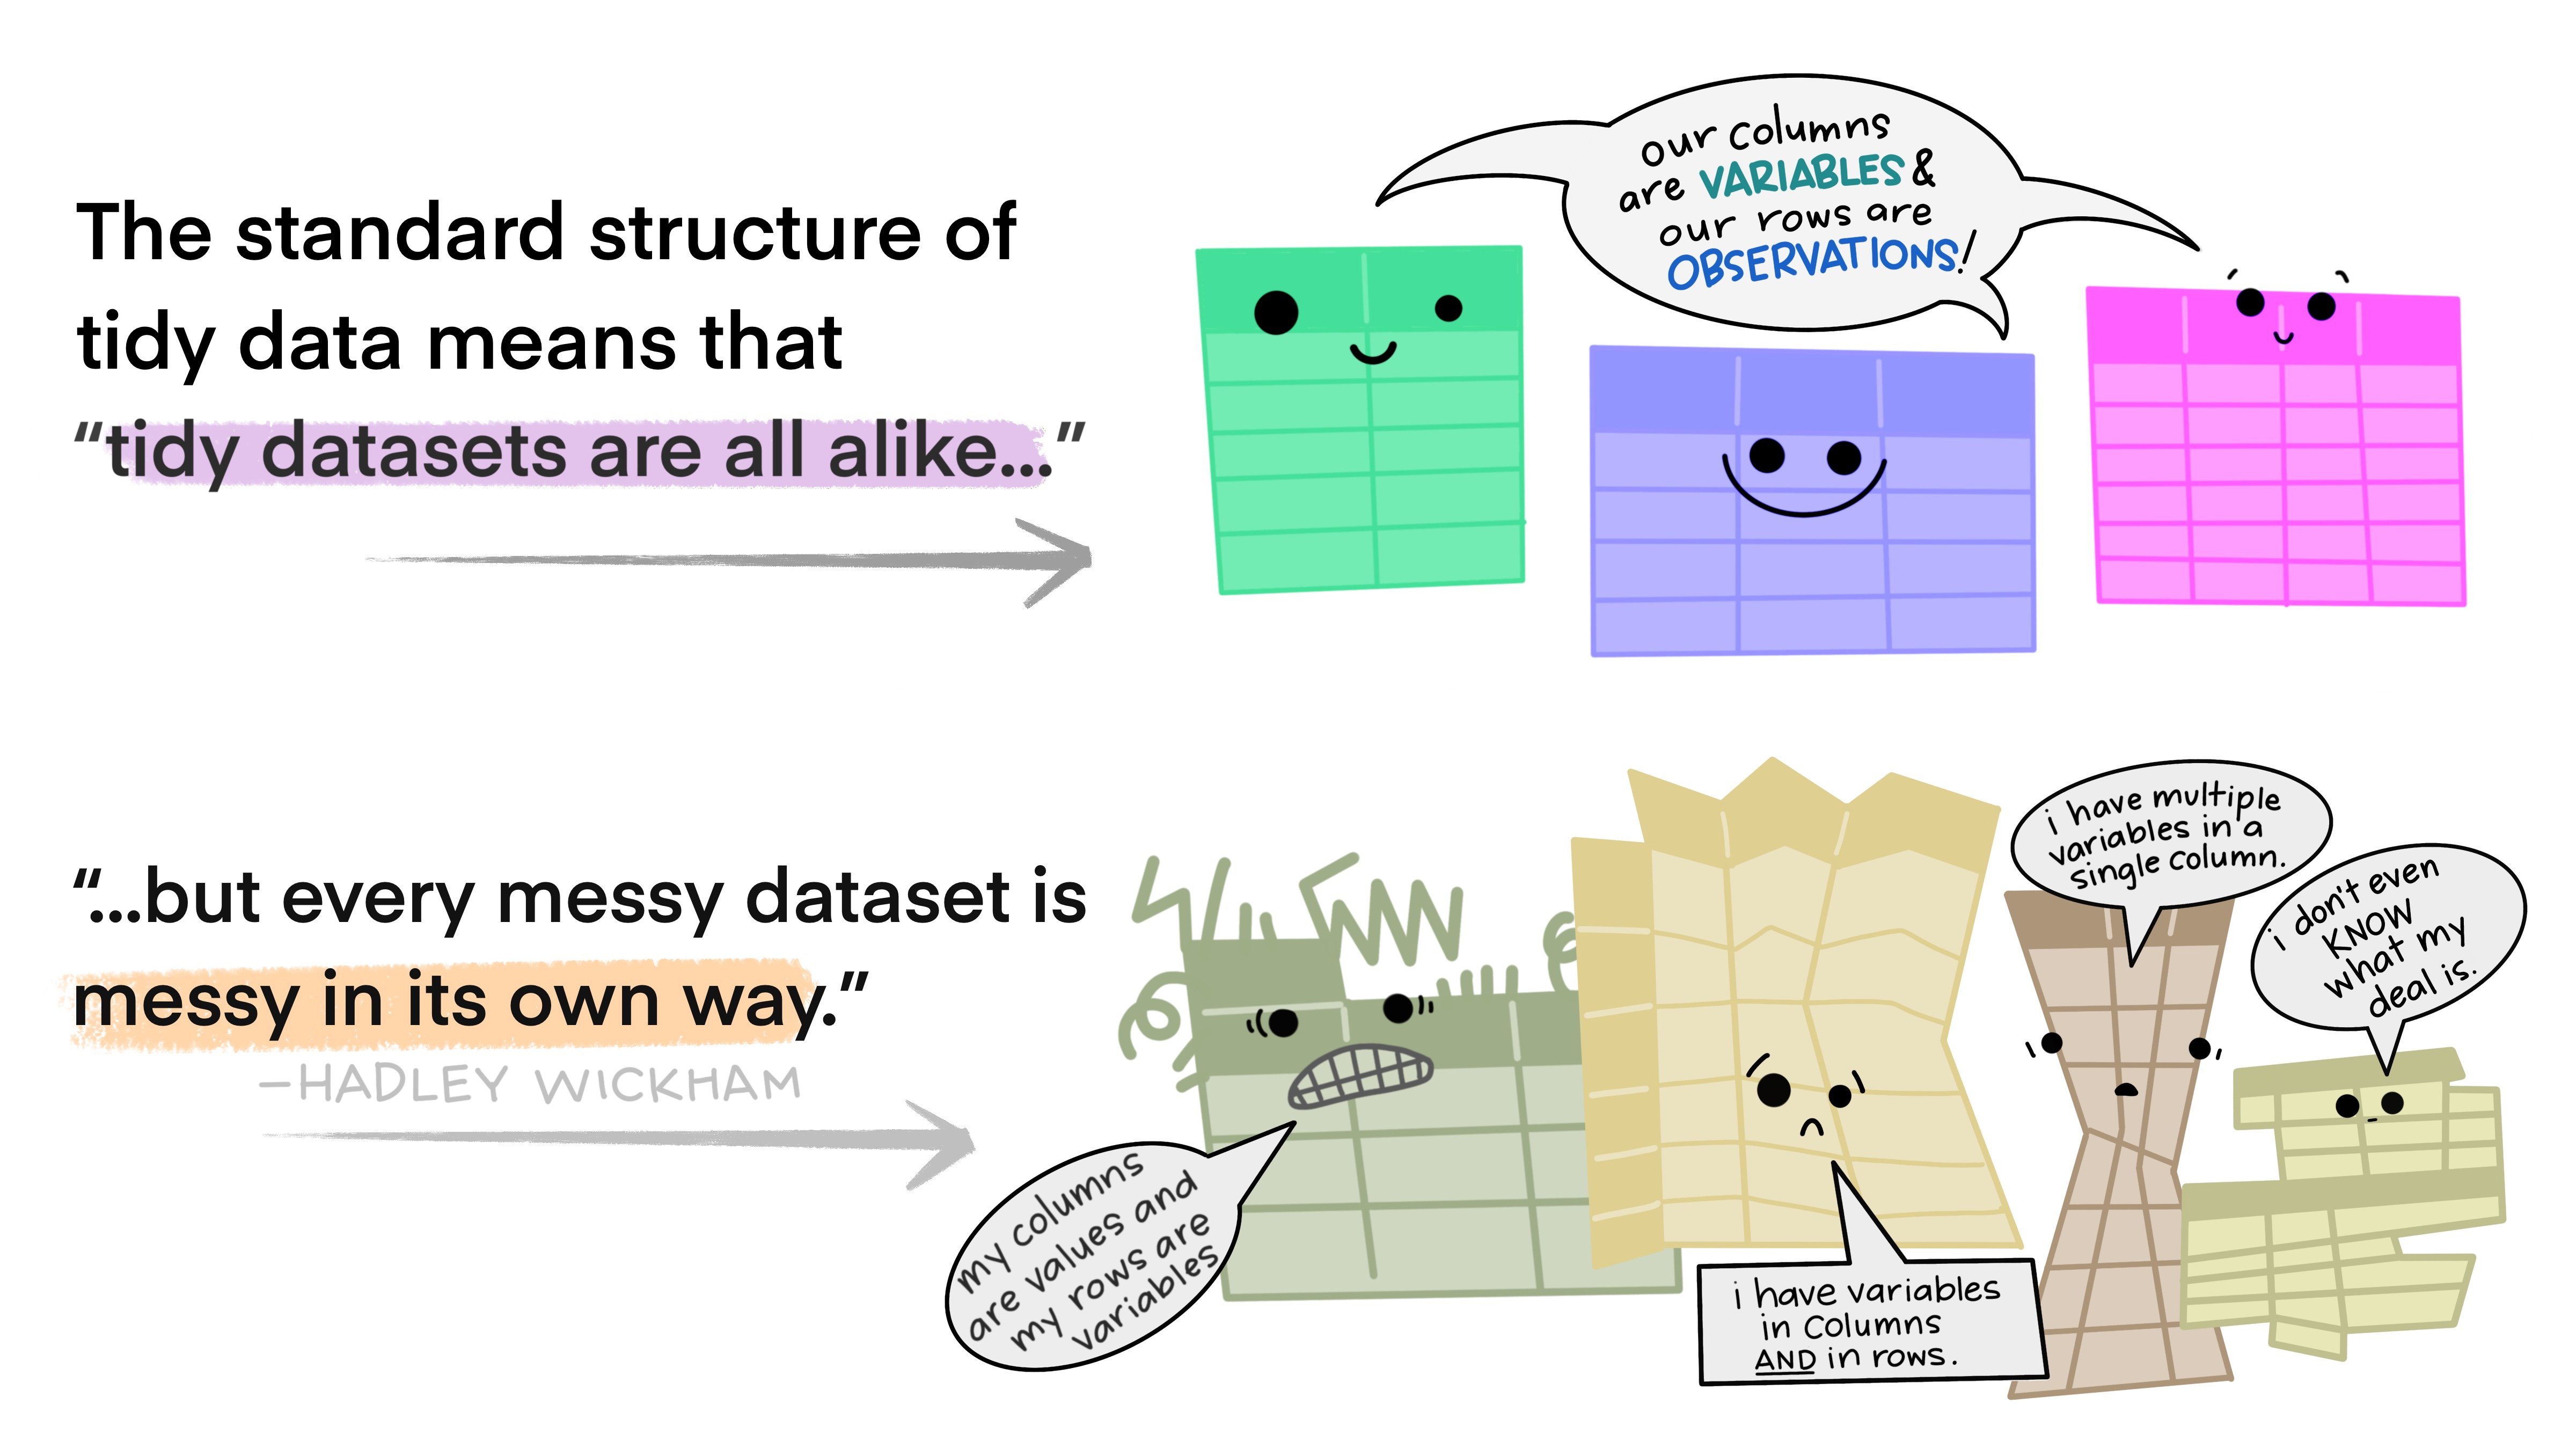 """""""The standard structure of tidy means that 'tidy datasets are all alike ... but every messy dataset is messy in its own way."""" - Hadley Wickham. Tidy data sets saying """"Our columns are variables and our rows are observations"""", messy data sets saying """"my columns are values and my rows are variables; I have variables in columns and in rows; I have multiple variables in a single columns; I don't even know what my deal is"""". Illustrations from the [Openscapes](https://www.openscapes.org/) blog [*Tidy Data for reproducibility, efficiency, and collaboration*](https://www.openscapes.org/blog/2020/10/12/tidy-data/) by Julia Lowndes and Allison Horst"""